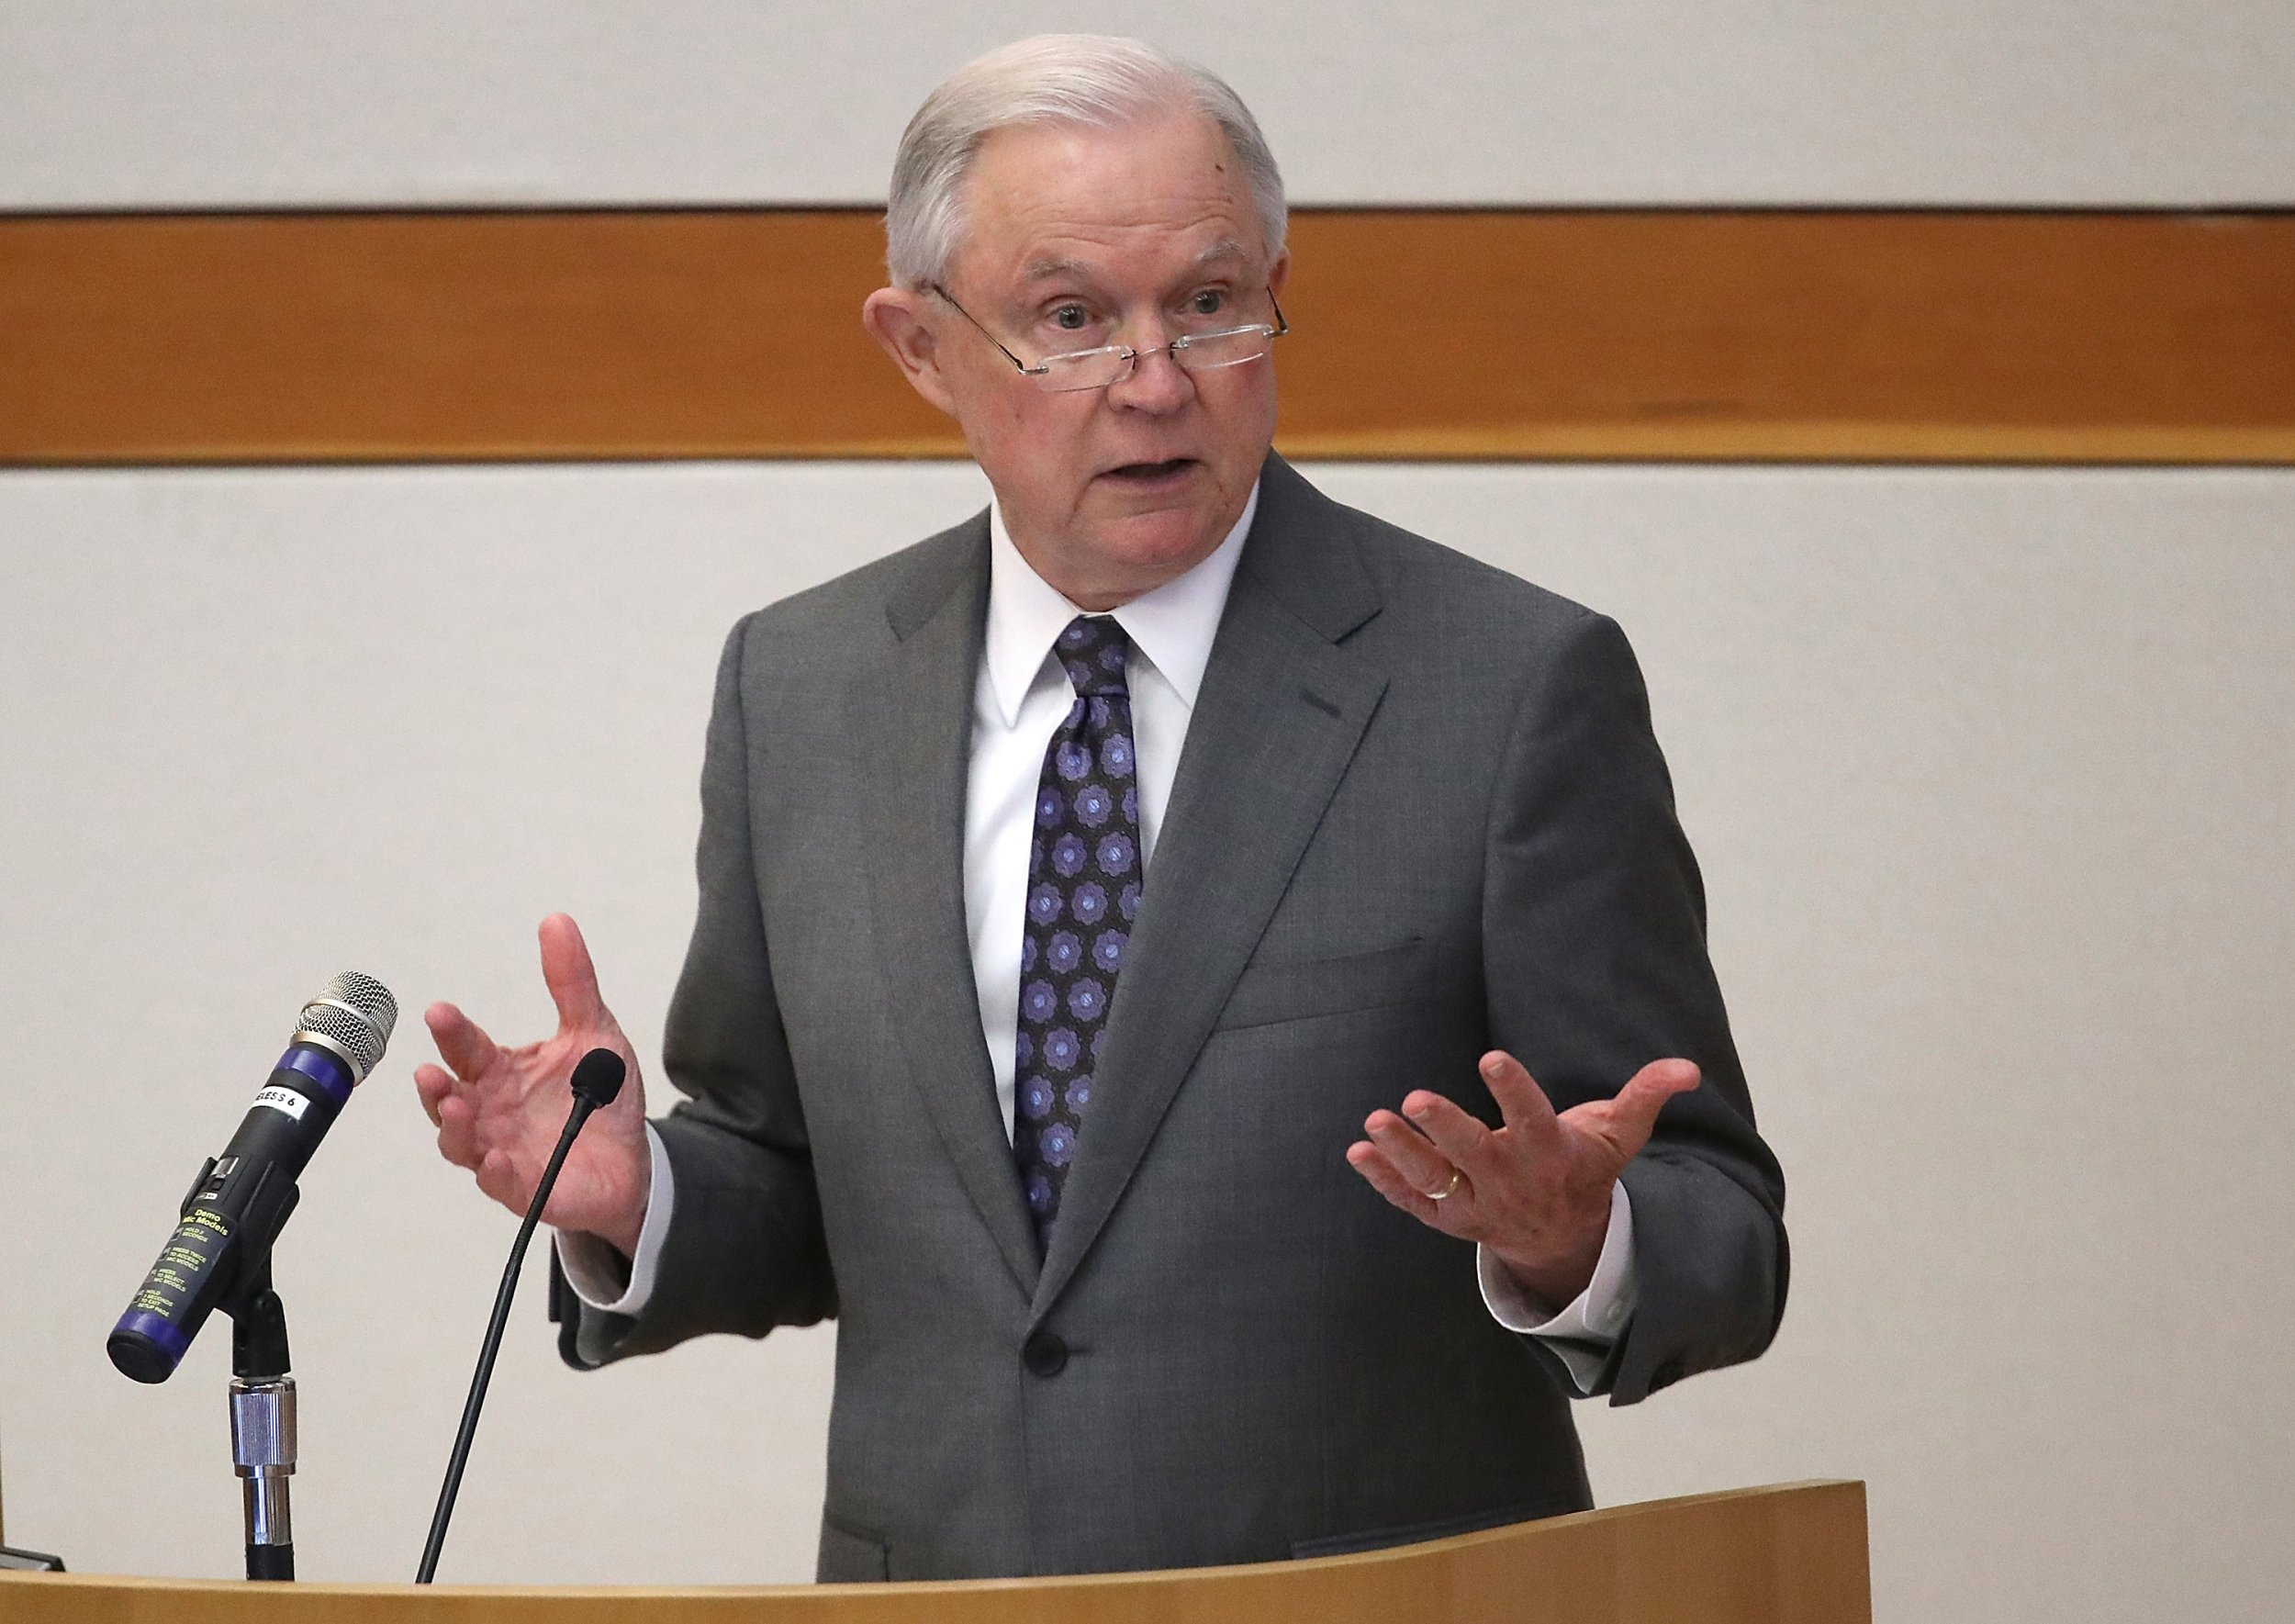 Jeff Sessions blames increases in gun deaths on Antifa, Black Lives Matter and the ACLU—but not guns